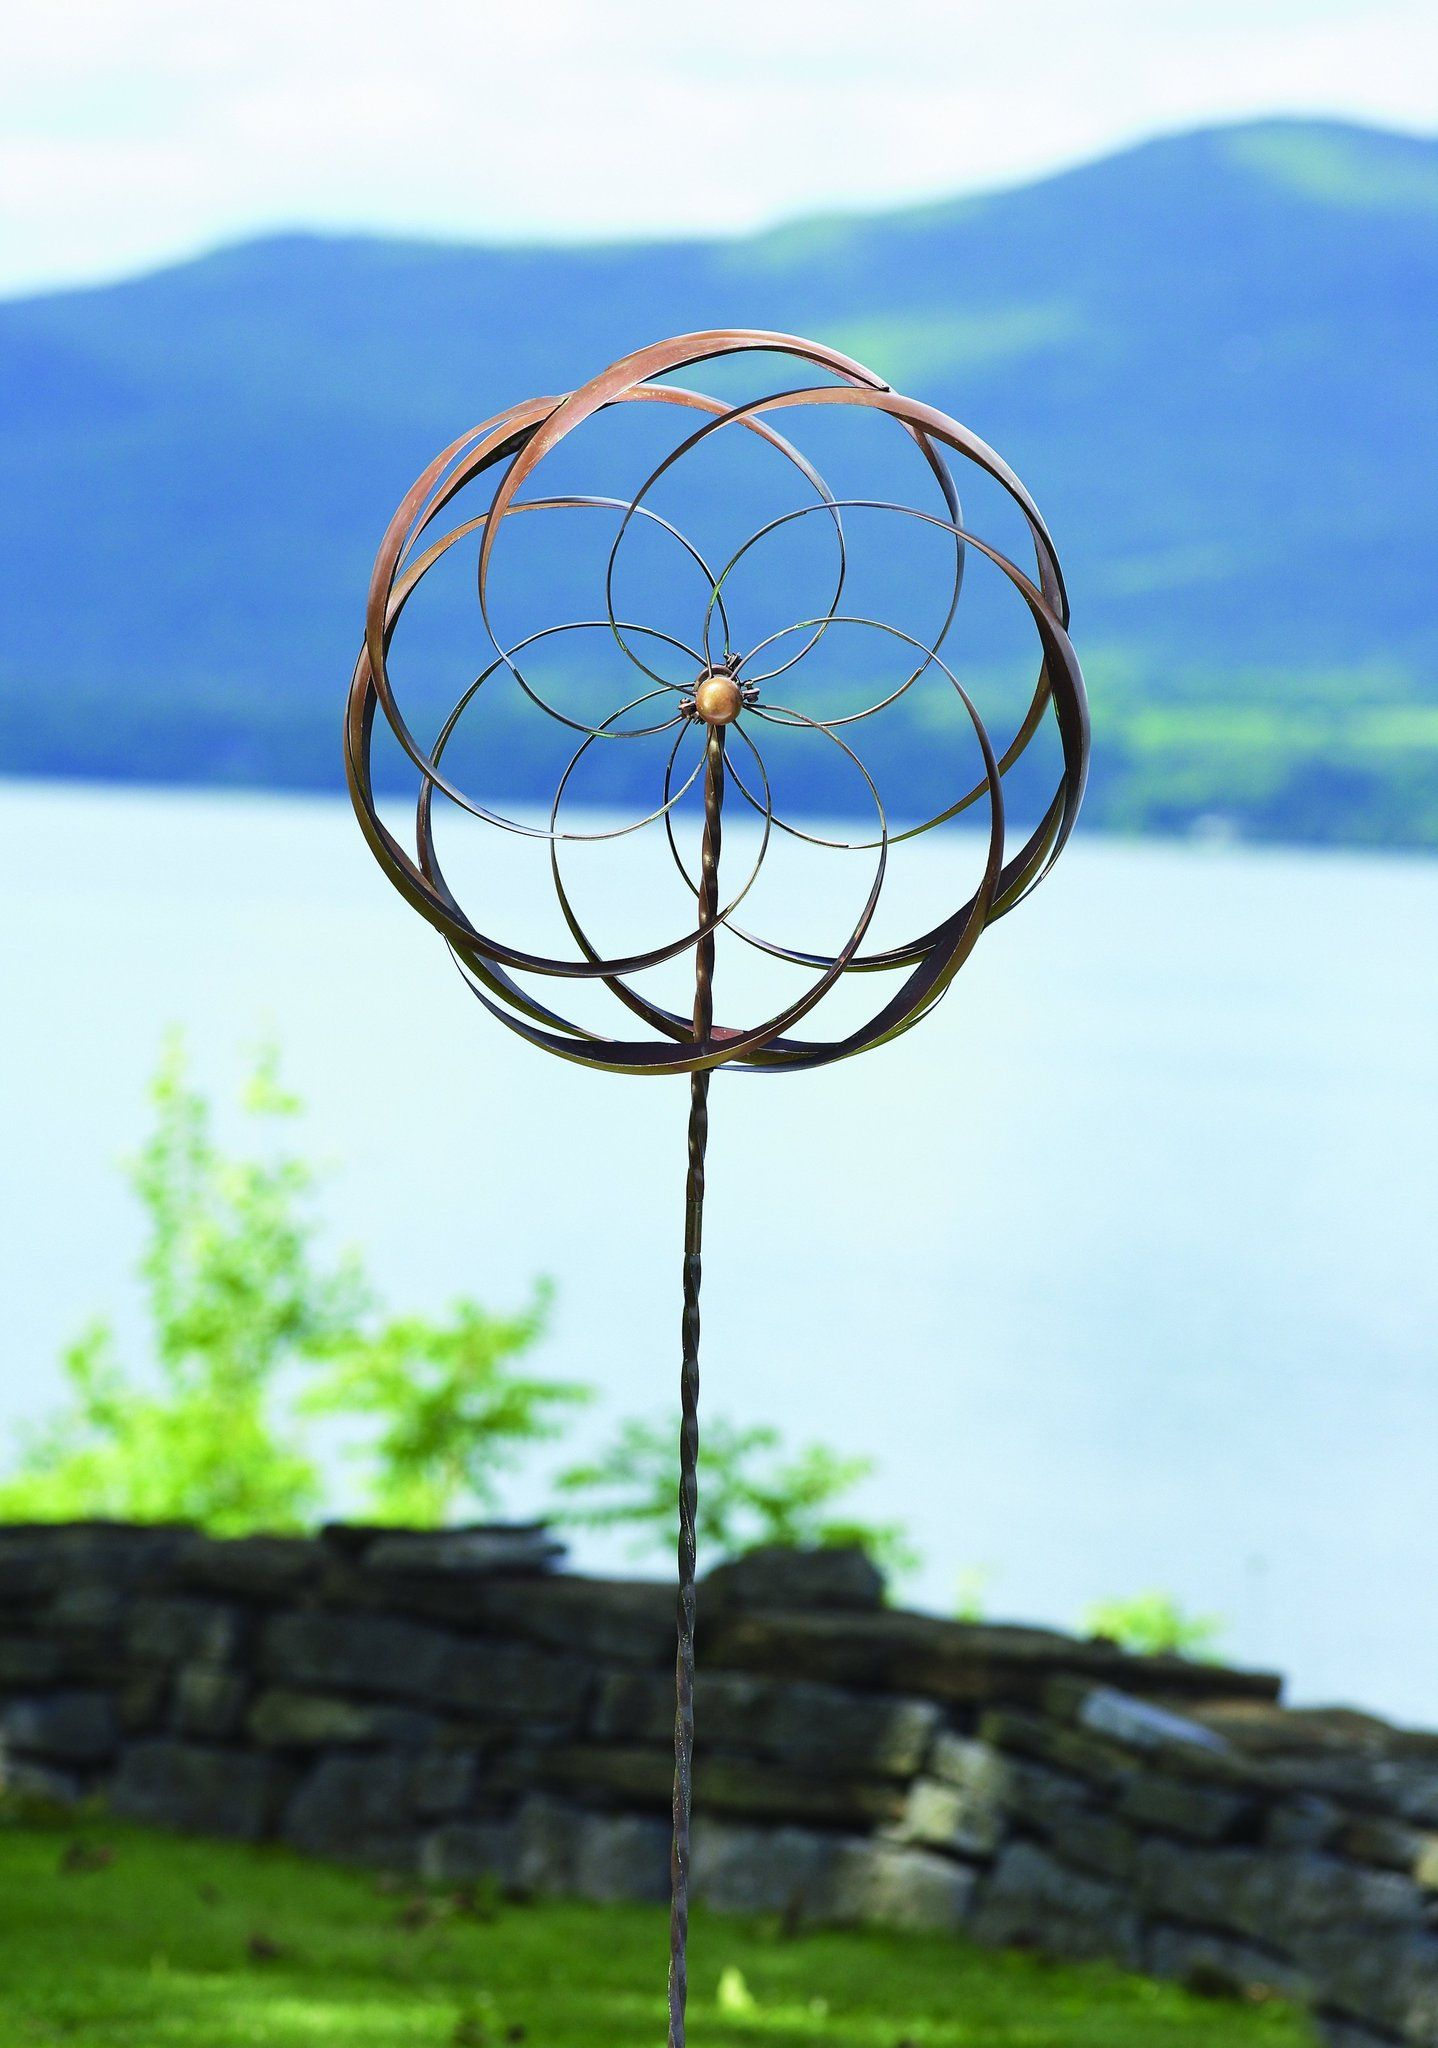 24 Copper Verdigris Flower Garden Wind Spinner Garden Yard Spinners Takes Pride Of Place In Your Gard Garden Spinners Wind Spinners Garden Wind Spinners